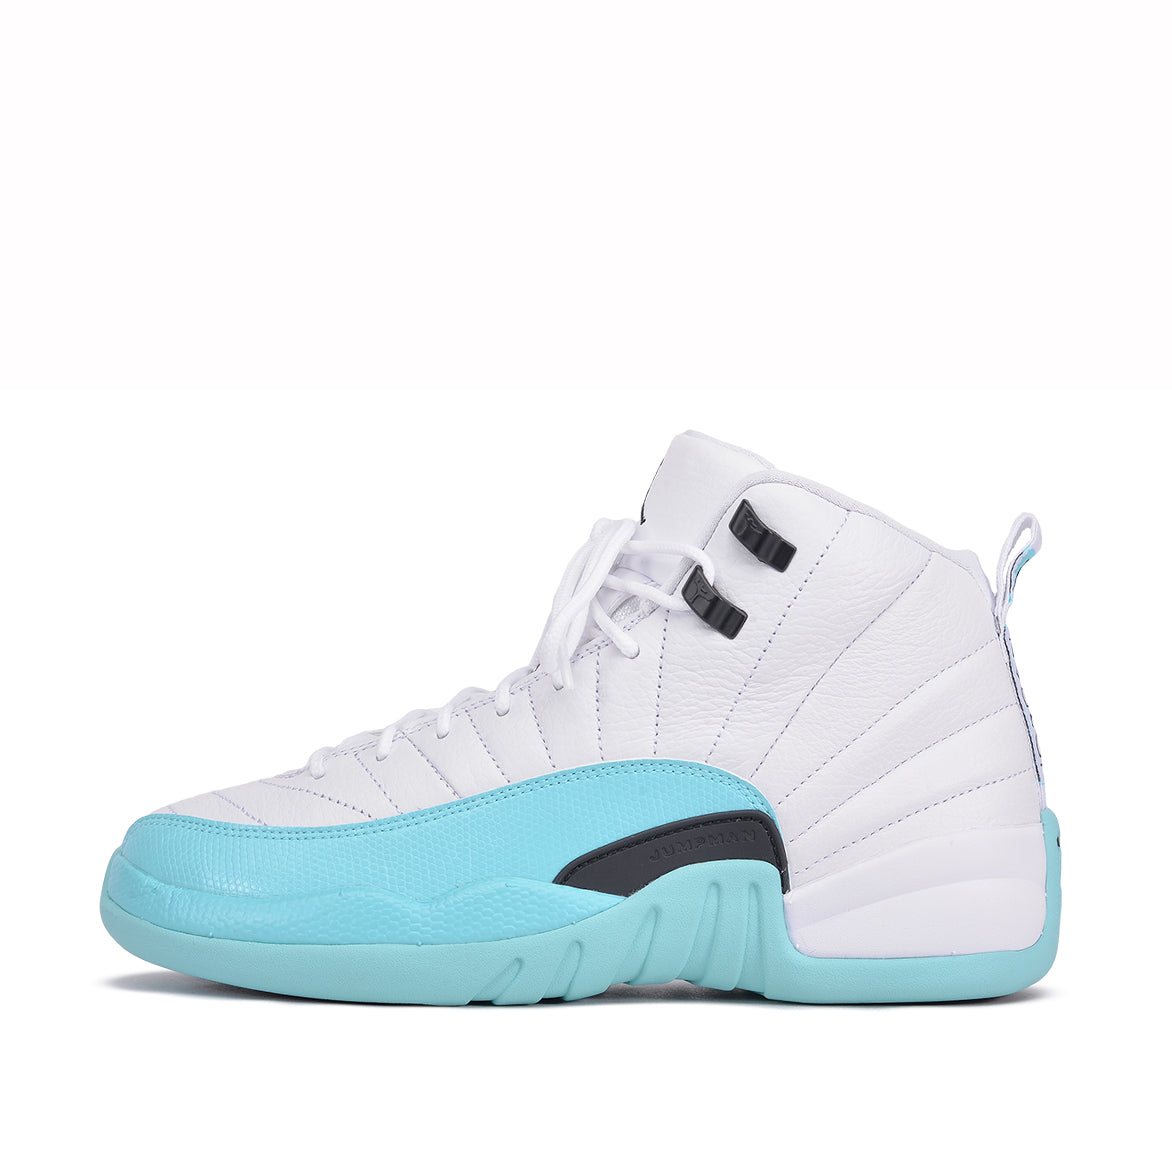 469042671c46ae AIR JORDAN RETRO 12 (GG)